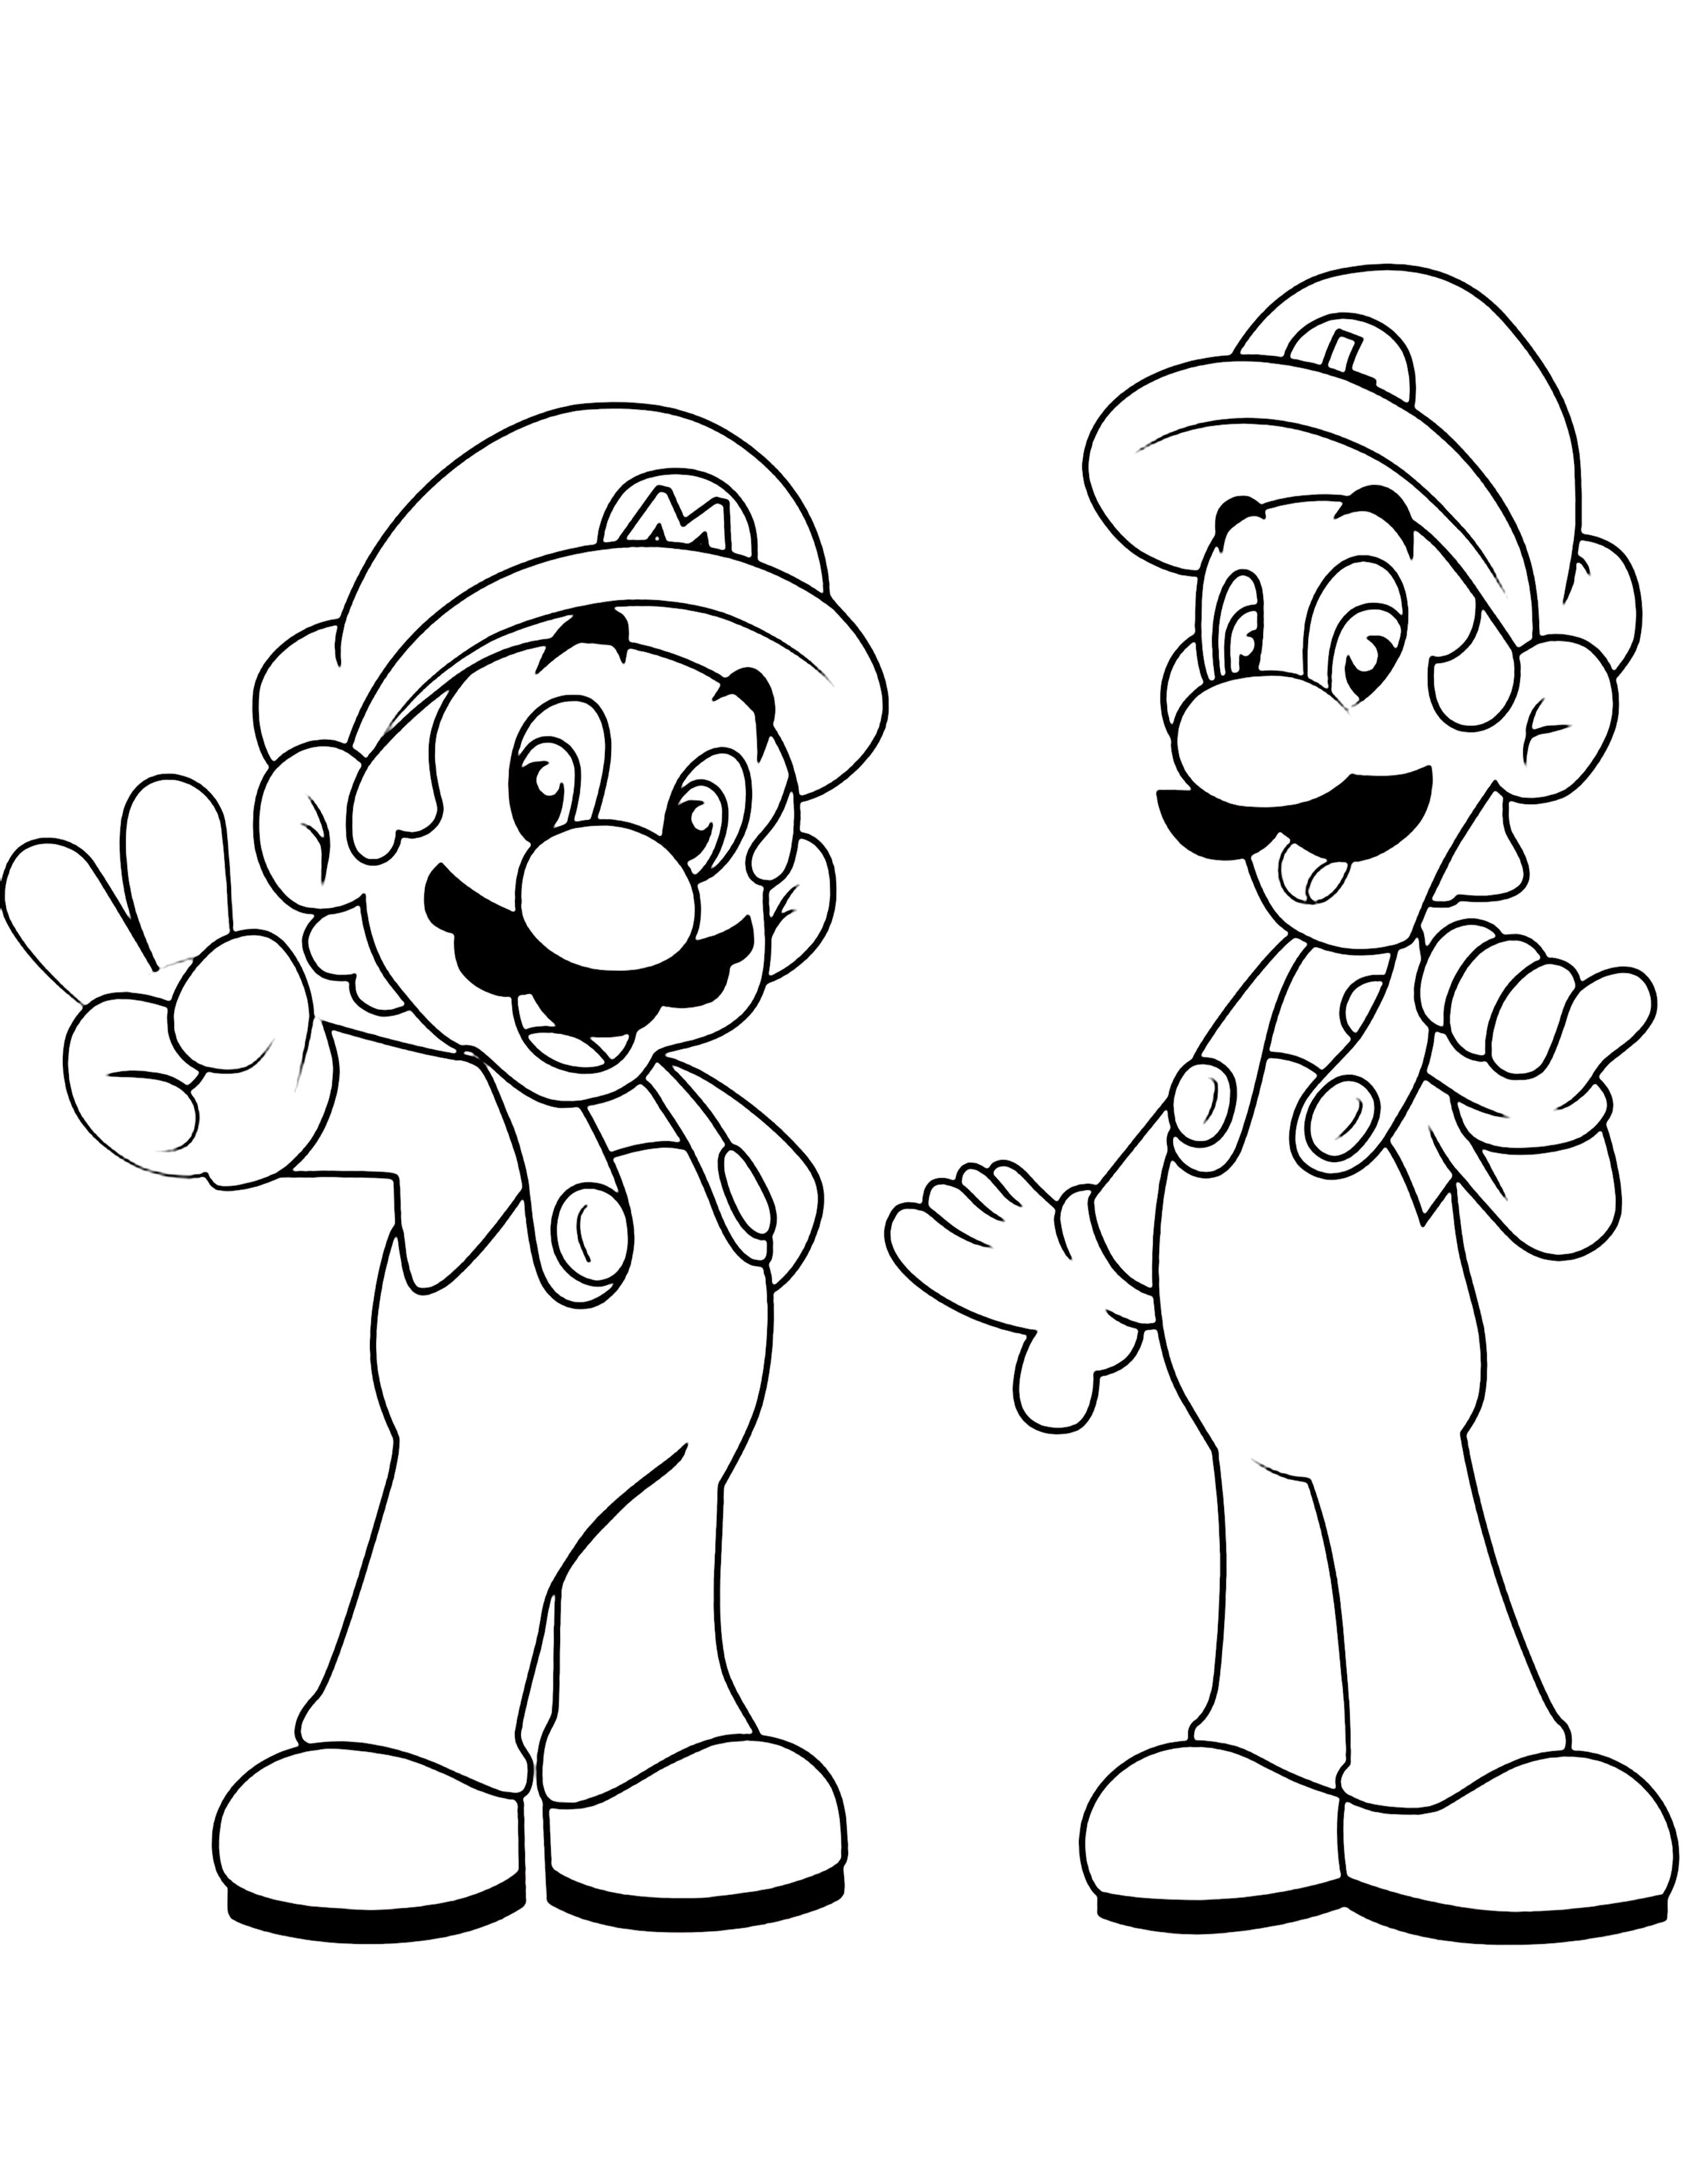 40 Mario Coloring Pages For Kids Super Mario Coloring Pages Mario Coloring Pages Bear Coloring Pages